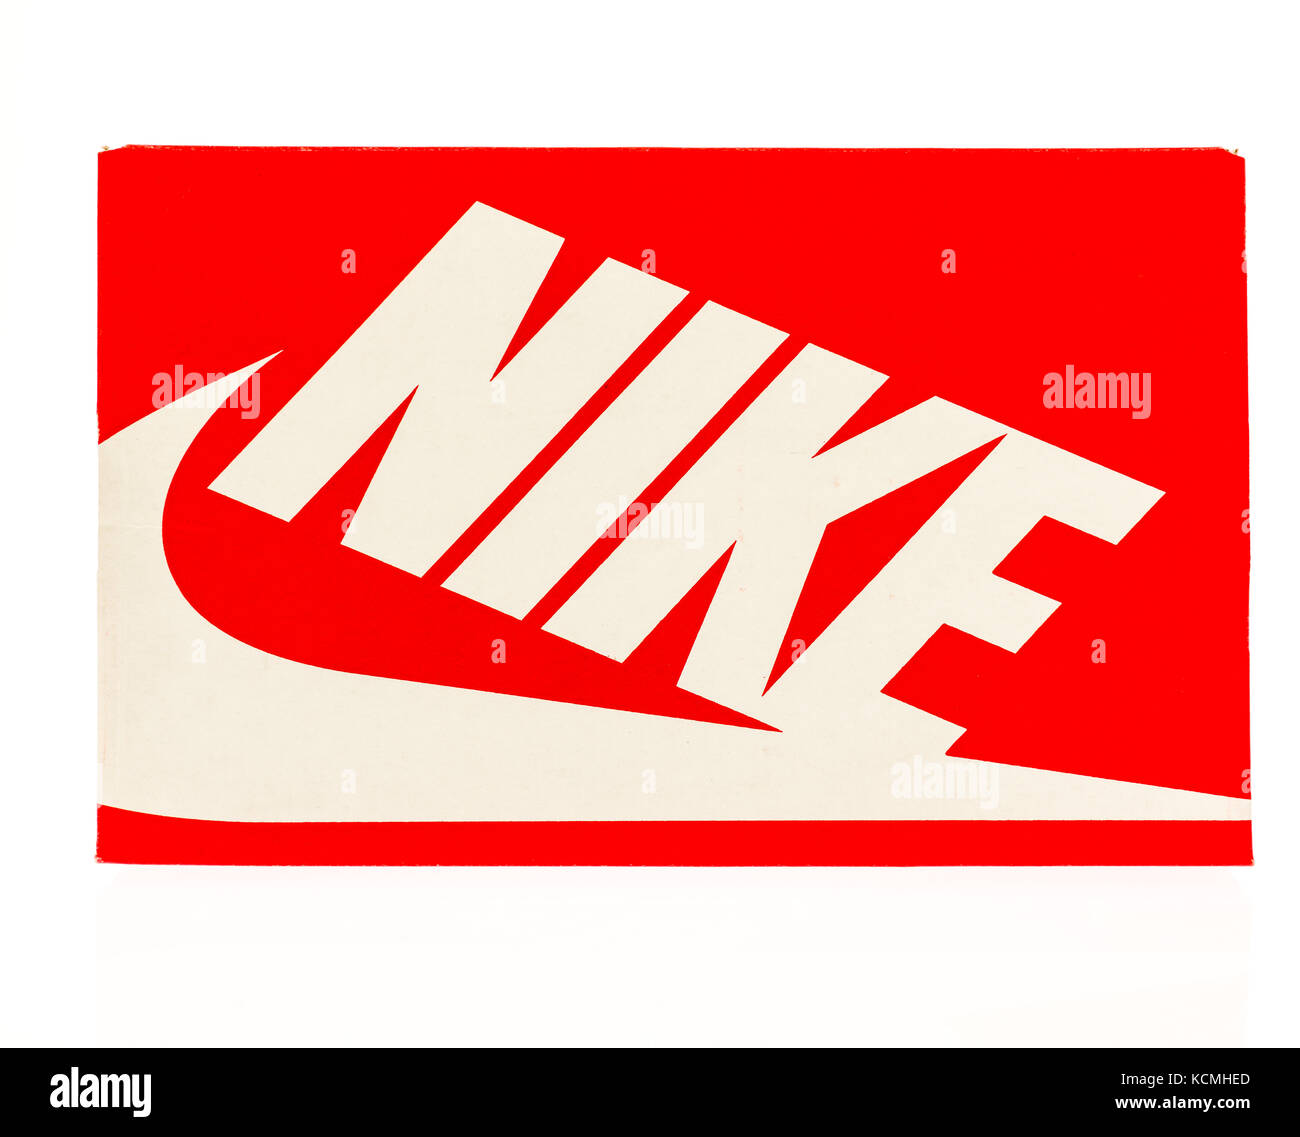 3fdc8eebaa2f Nike Logo Stock Photos   Nike Logo Stock Images - Alamy